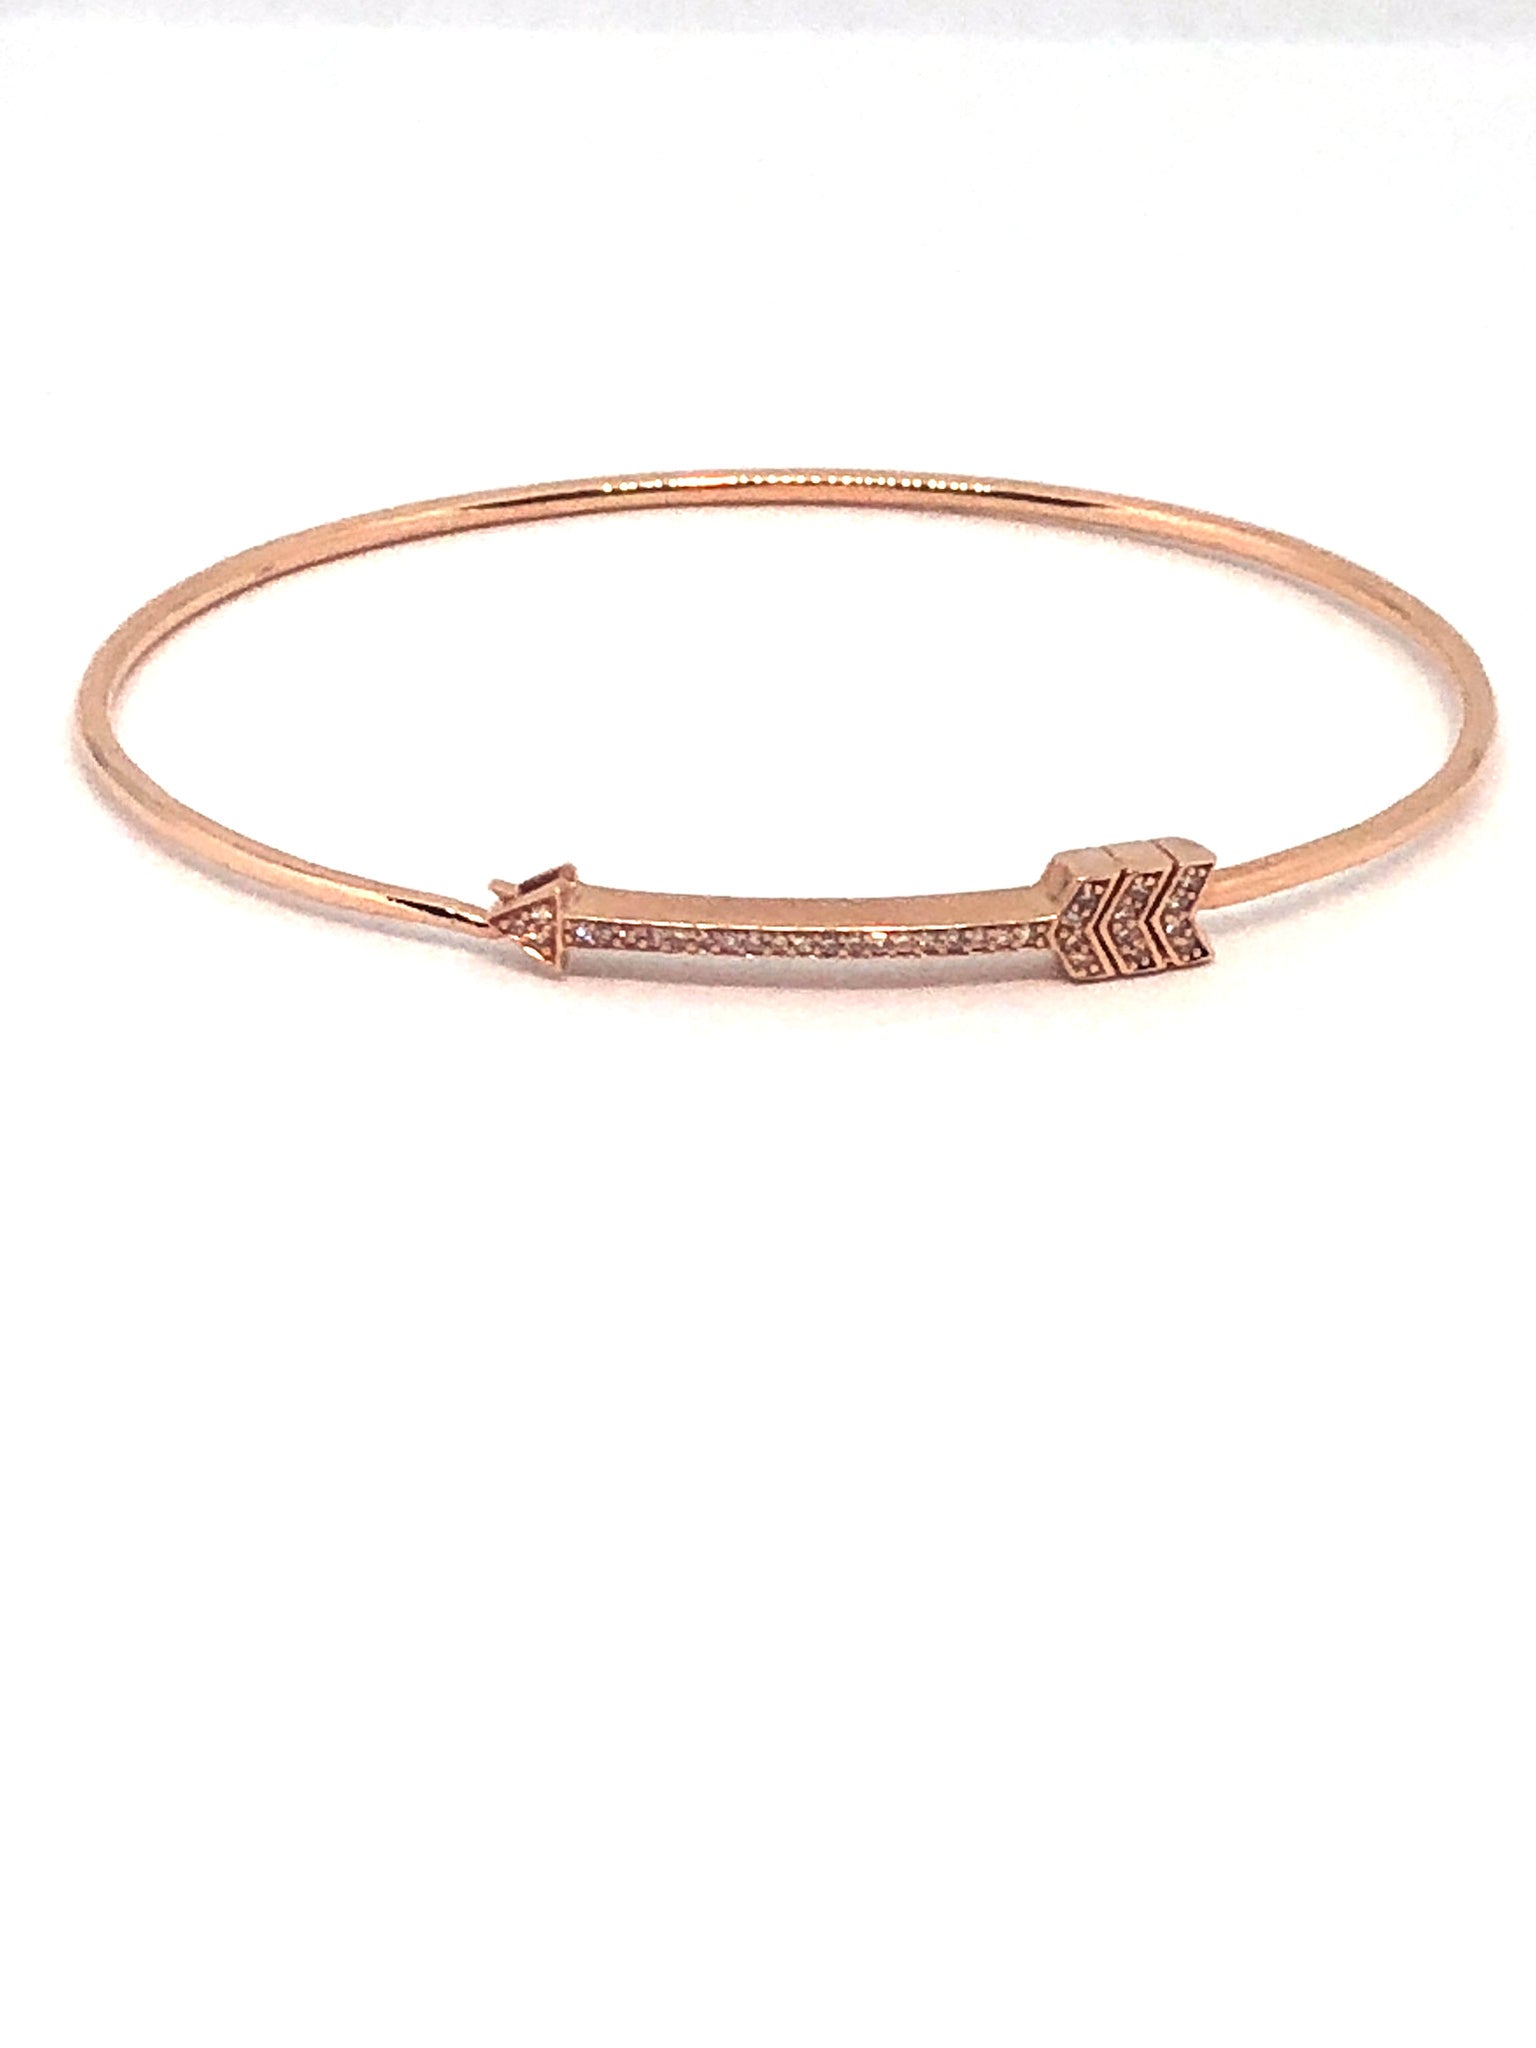 Arrow Bracelet in Rose Gold and Diamonds